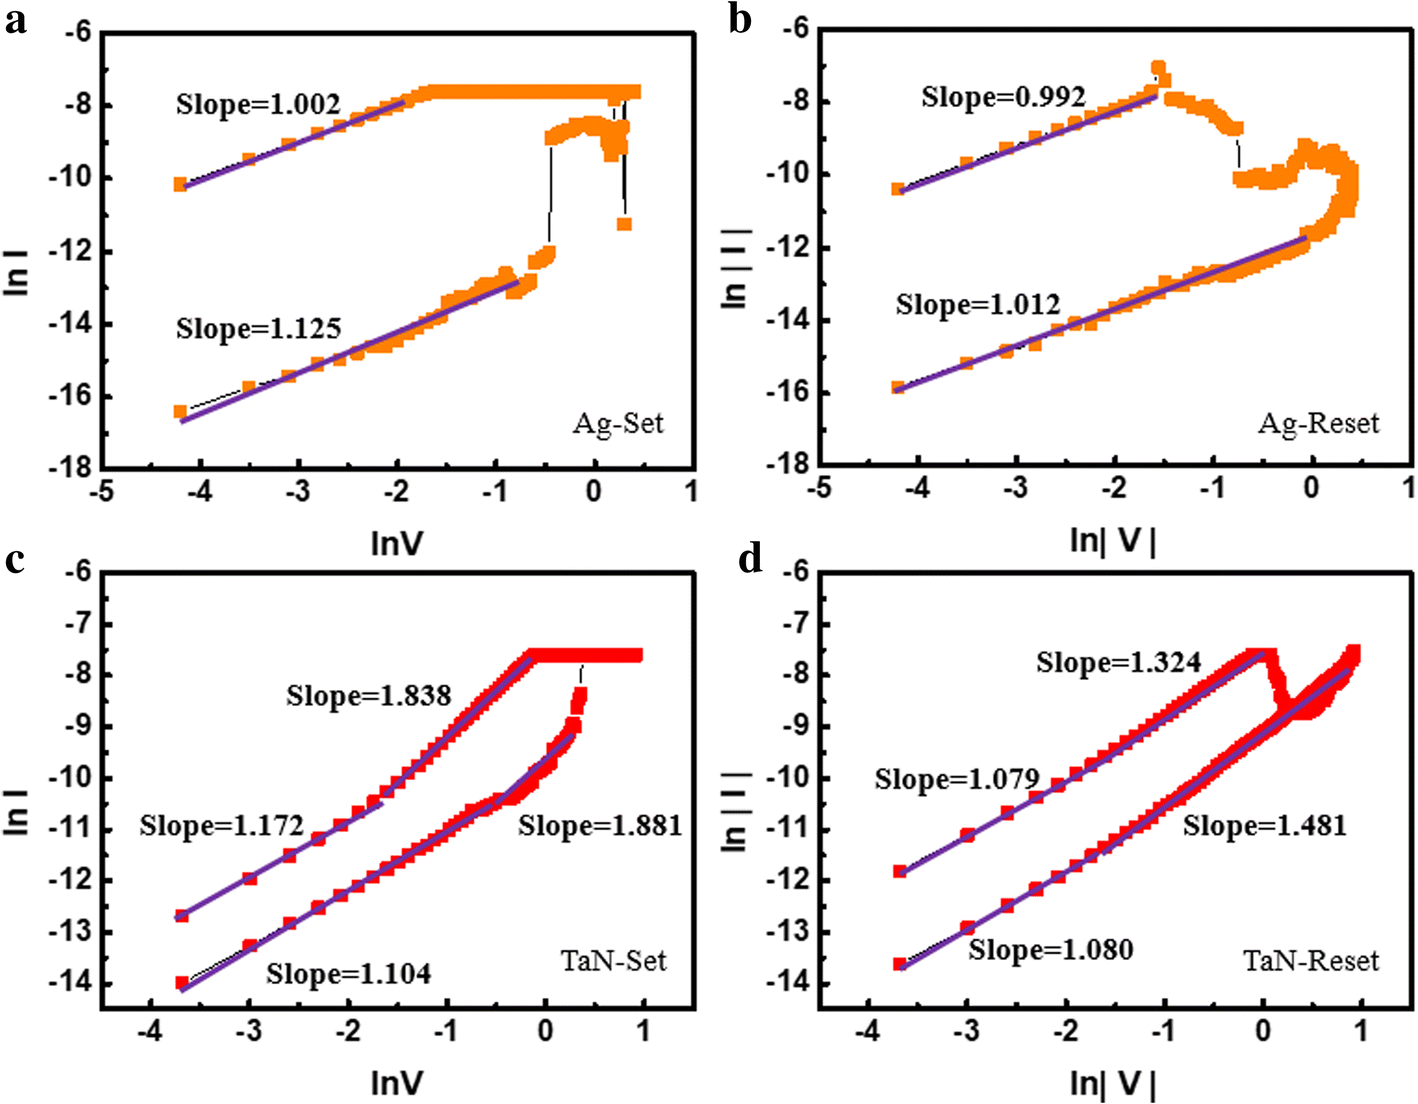 Atomic Layer-Deposited HfAlOx-Based RRAM with Low Operating Voltage